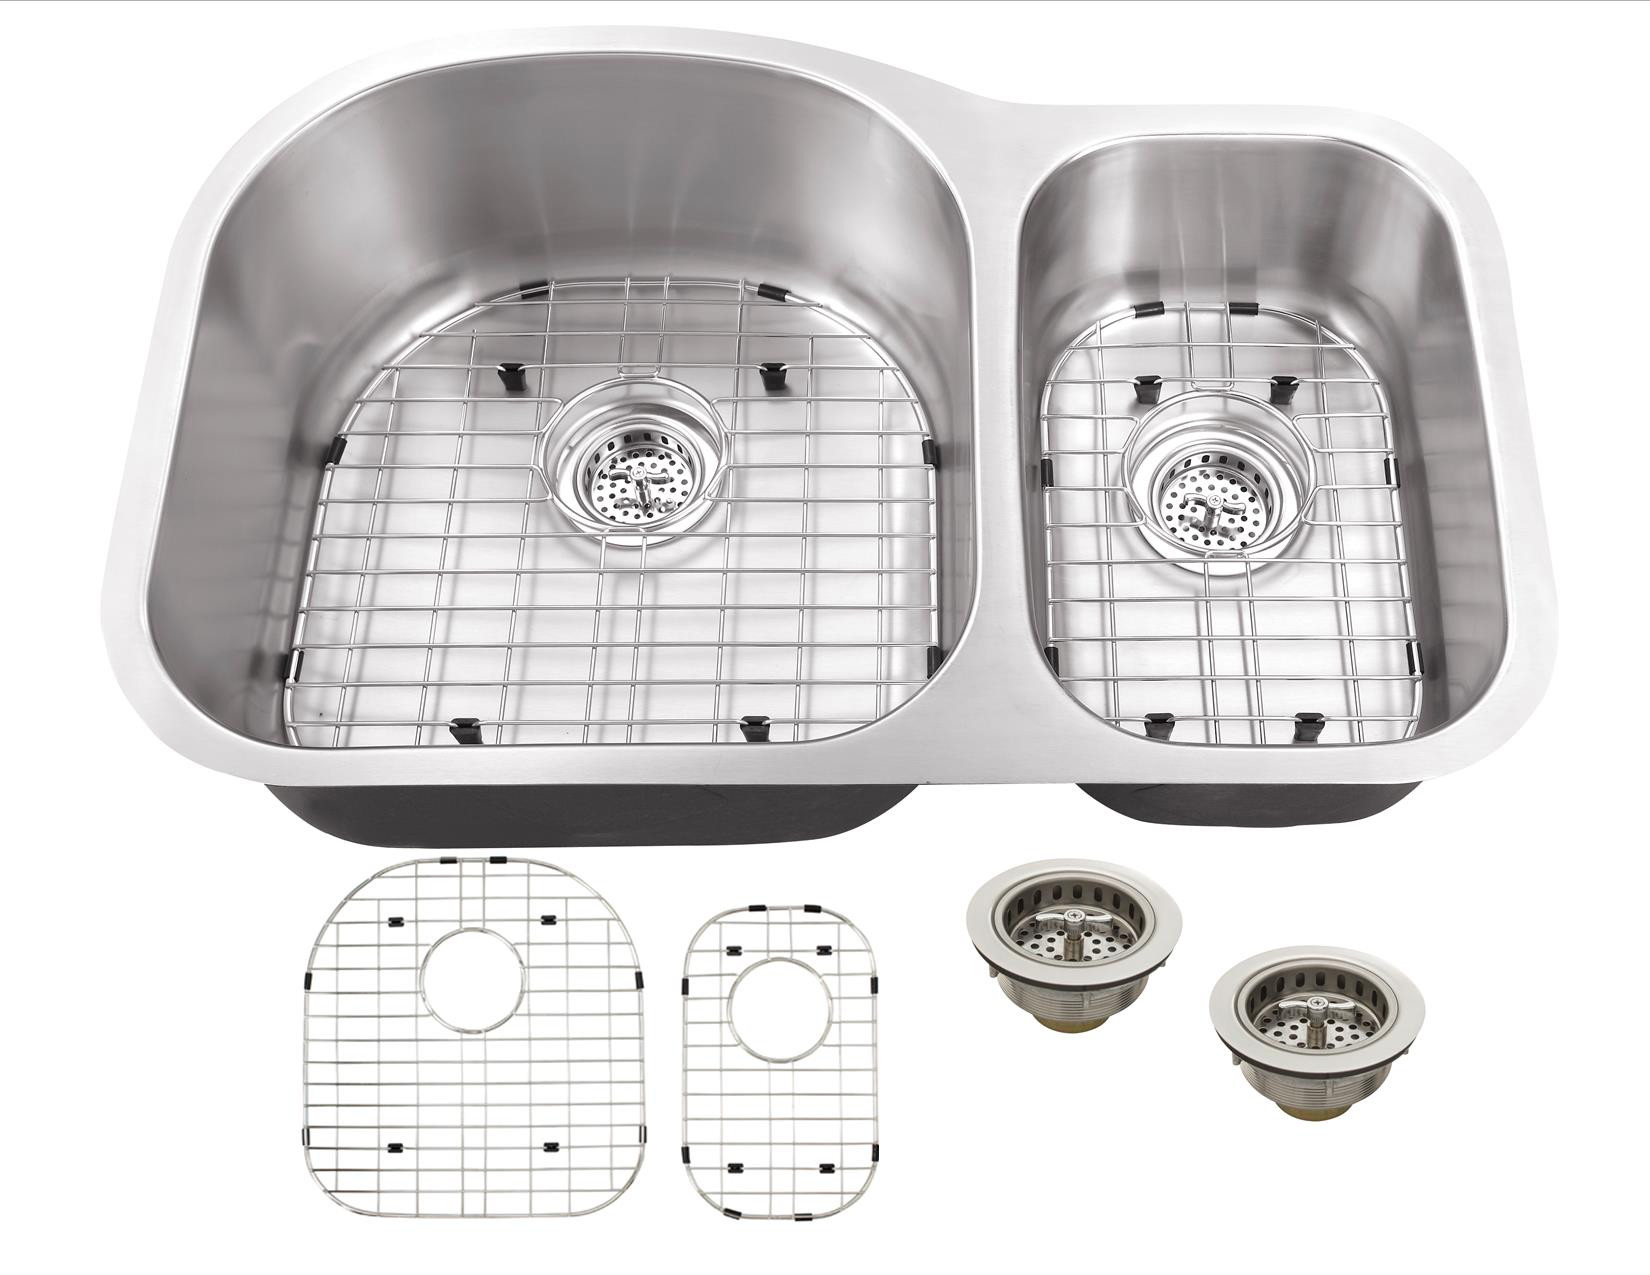 Cahaba CA121432 16 Gauge Double Kitchen Sink w/ Grid Set & Drain Assemblies